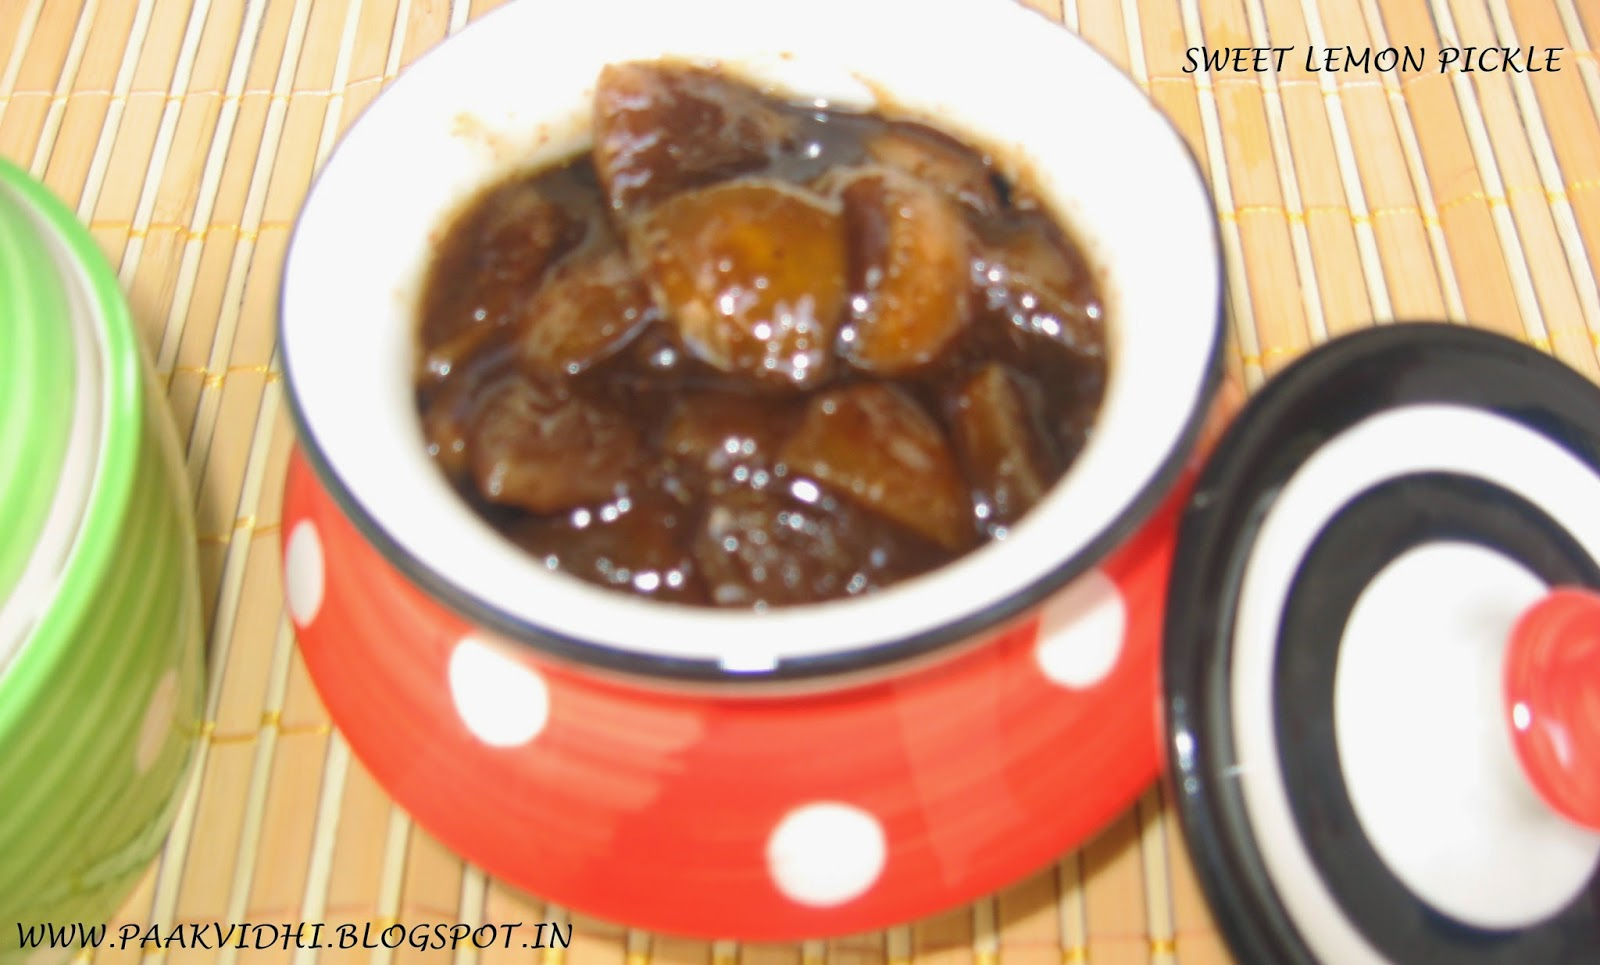 http://www.paakvidhi.com/2014/07/sweet-lemon-pickle.html